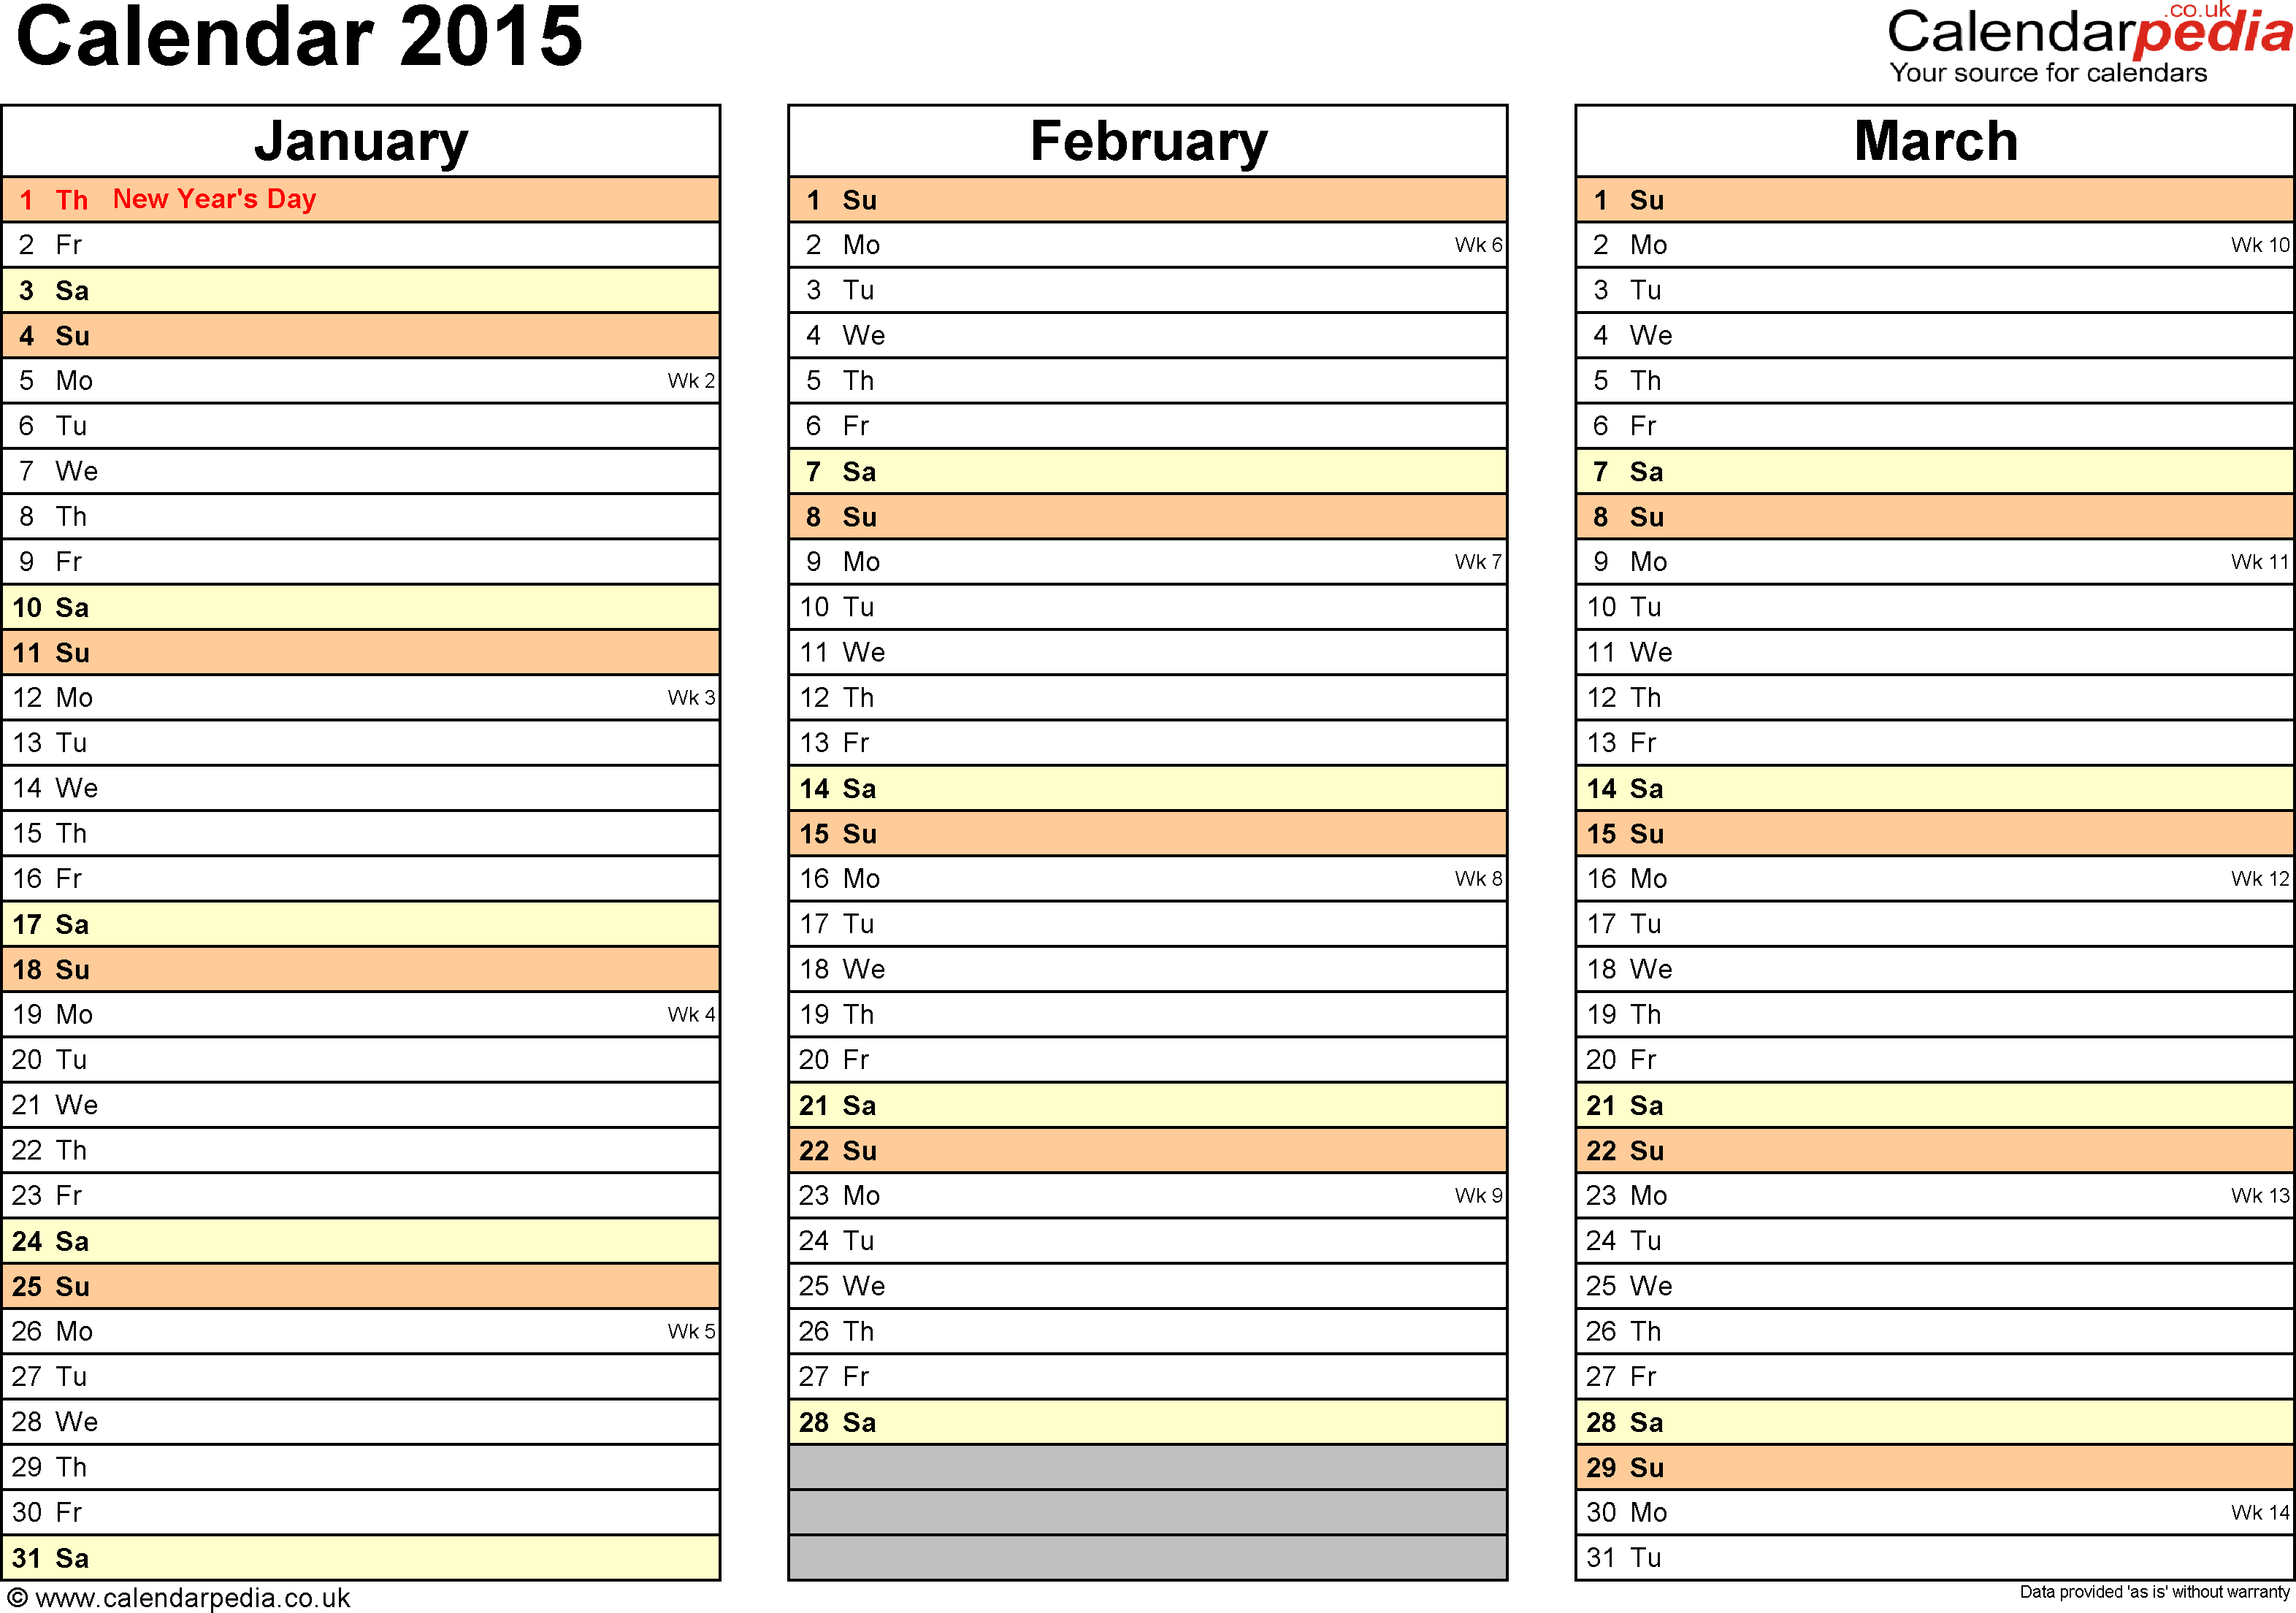 014 Monthning Calendar Template Ic Annual ~ Tinypetition intended for Yearly Planning Calendar Template For -2019